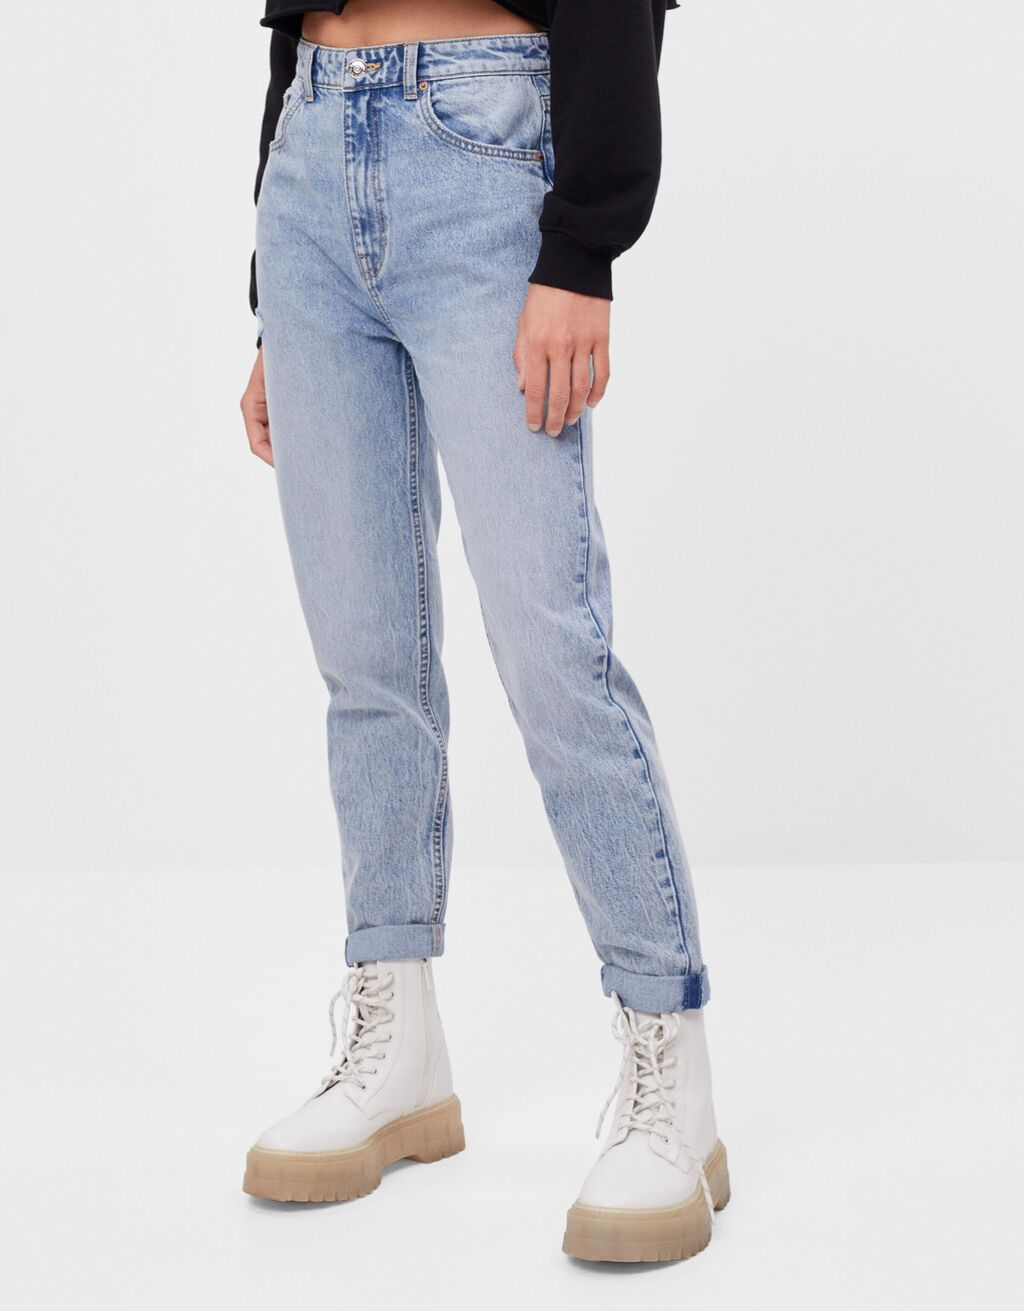 Mom jeans with turn-up hems